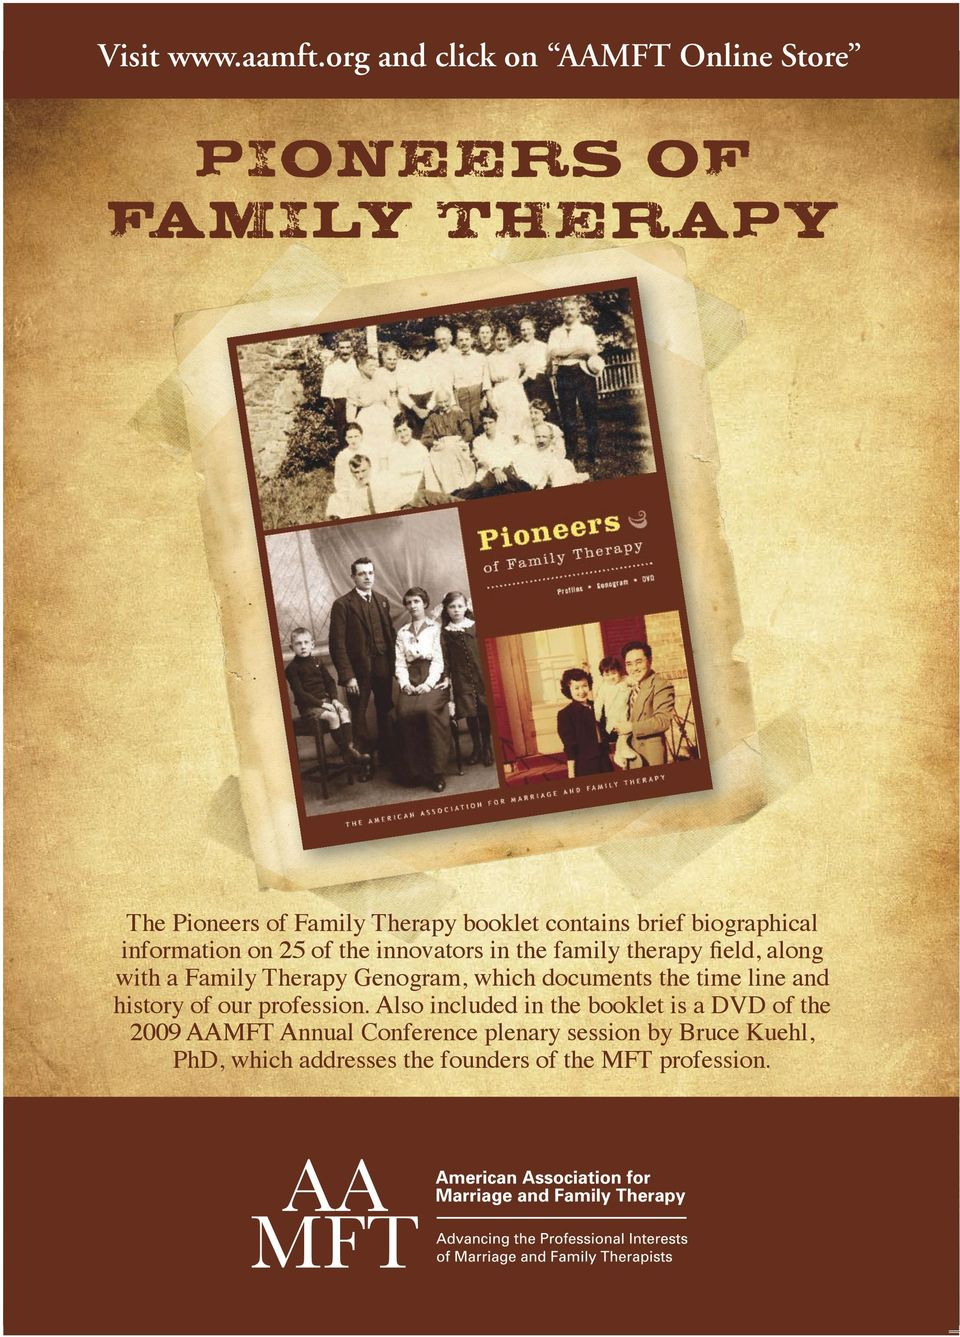 biographical information on 25 of the innovators in the family therapy field, along with a Family Therapy Genogram,